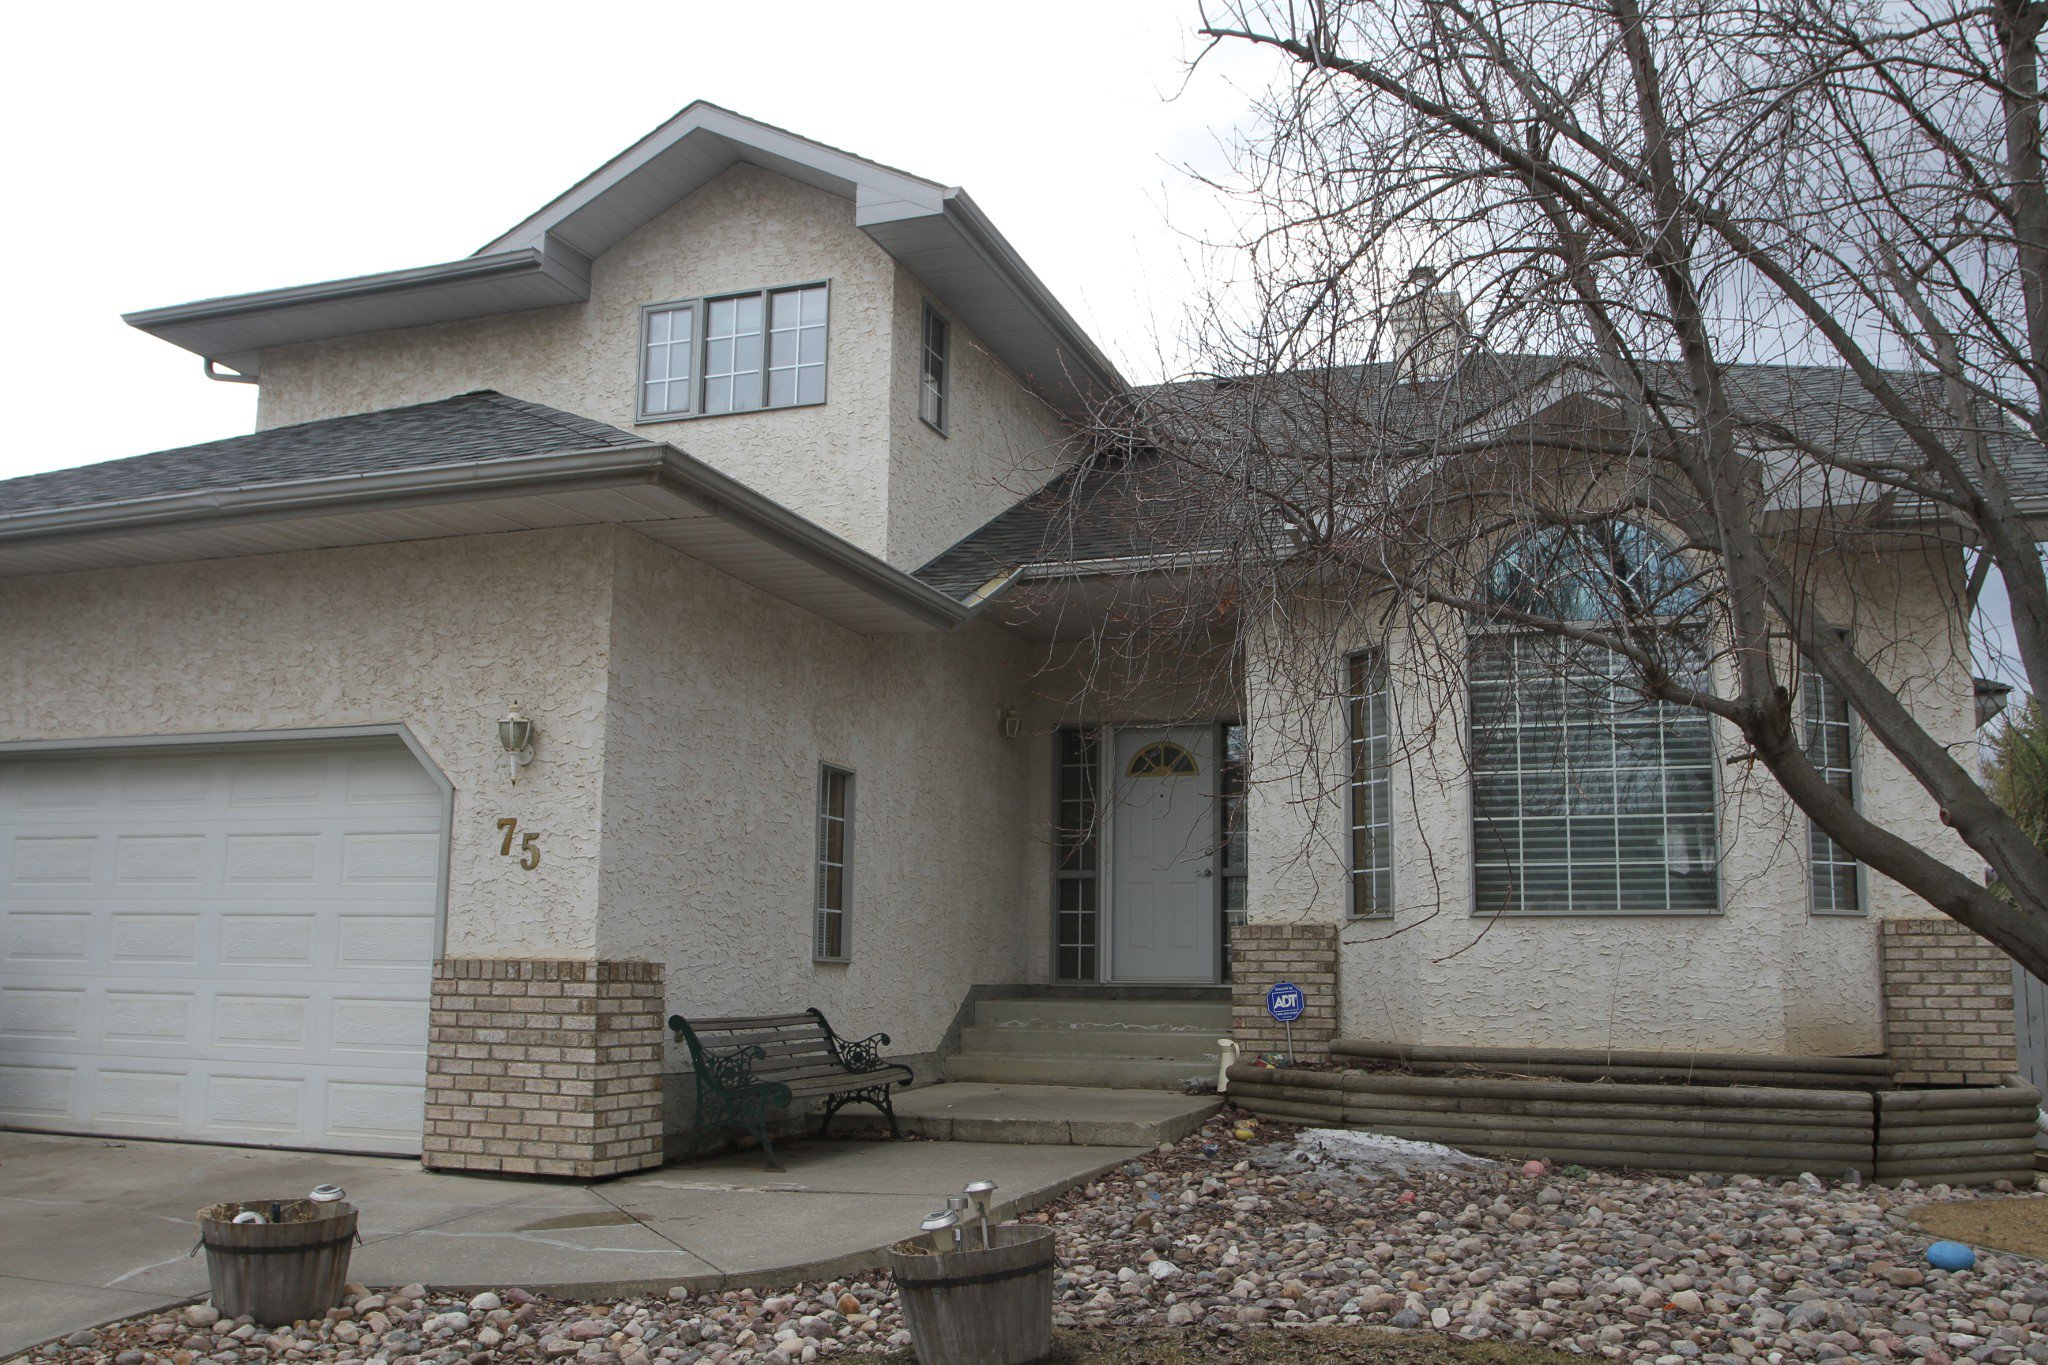 Main Photo: 75 Harwood Drive in St. Albert: House for rent